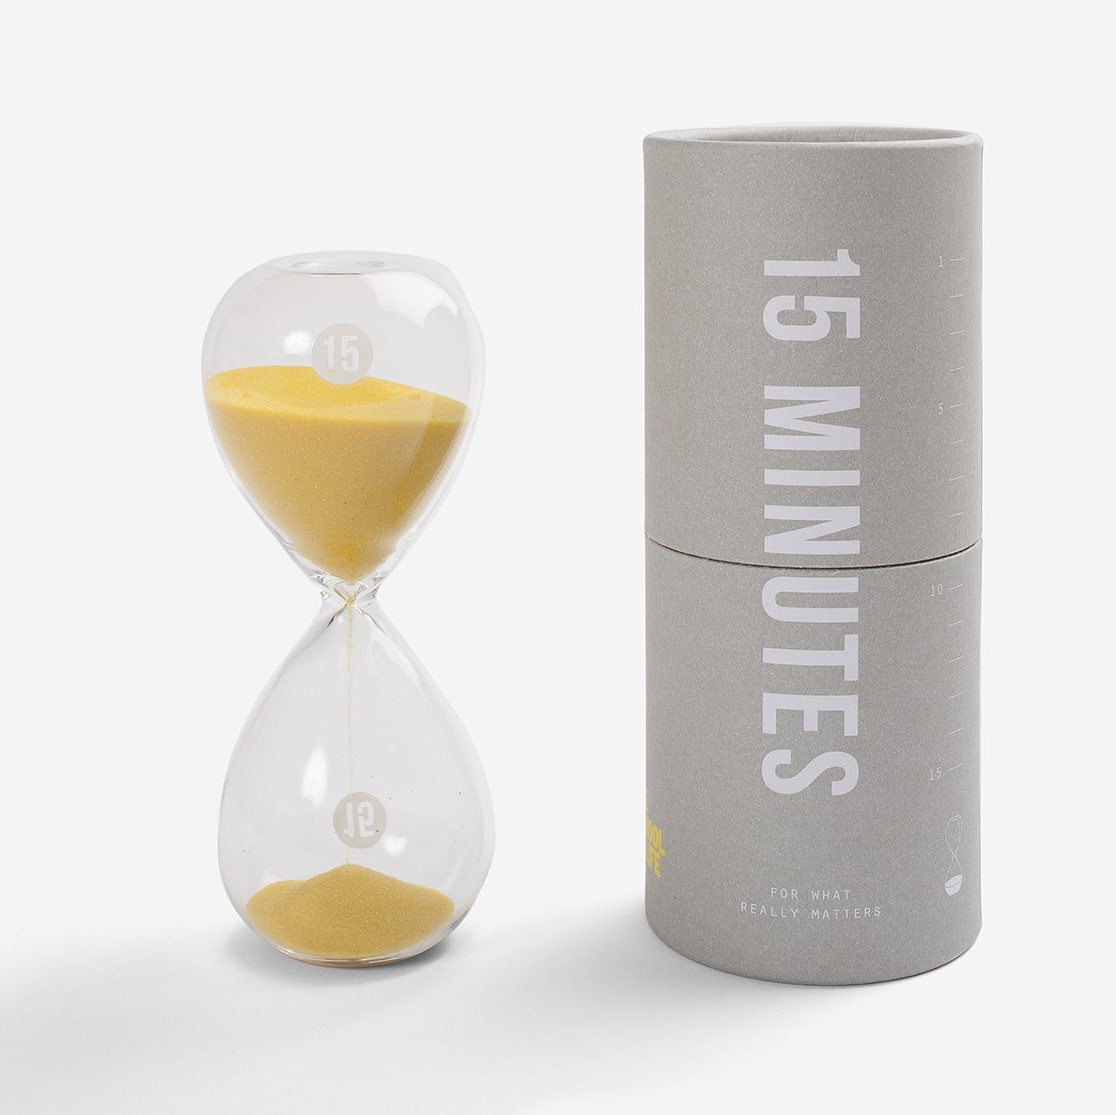 15 MINUTE HOUR GLASS